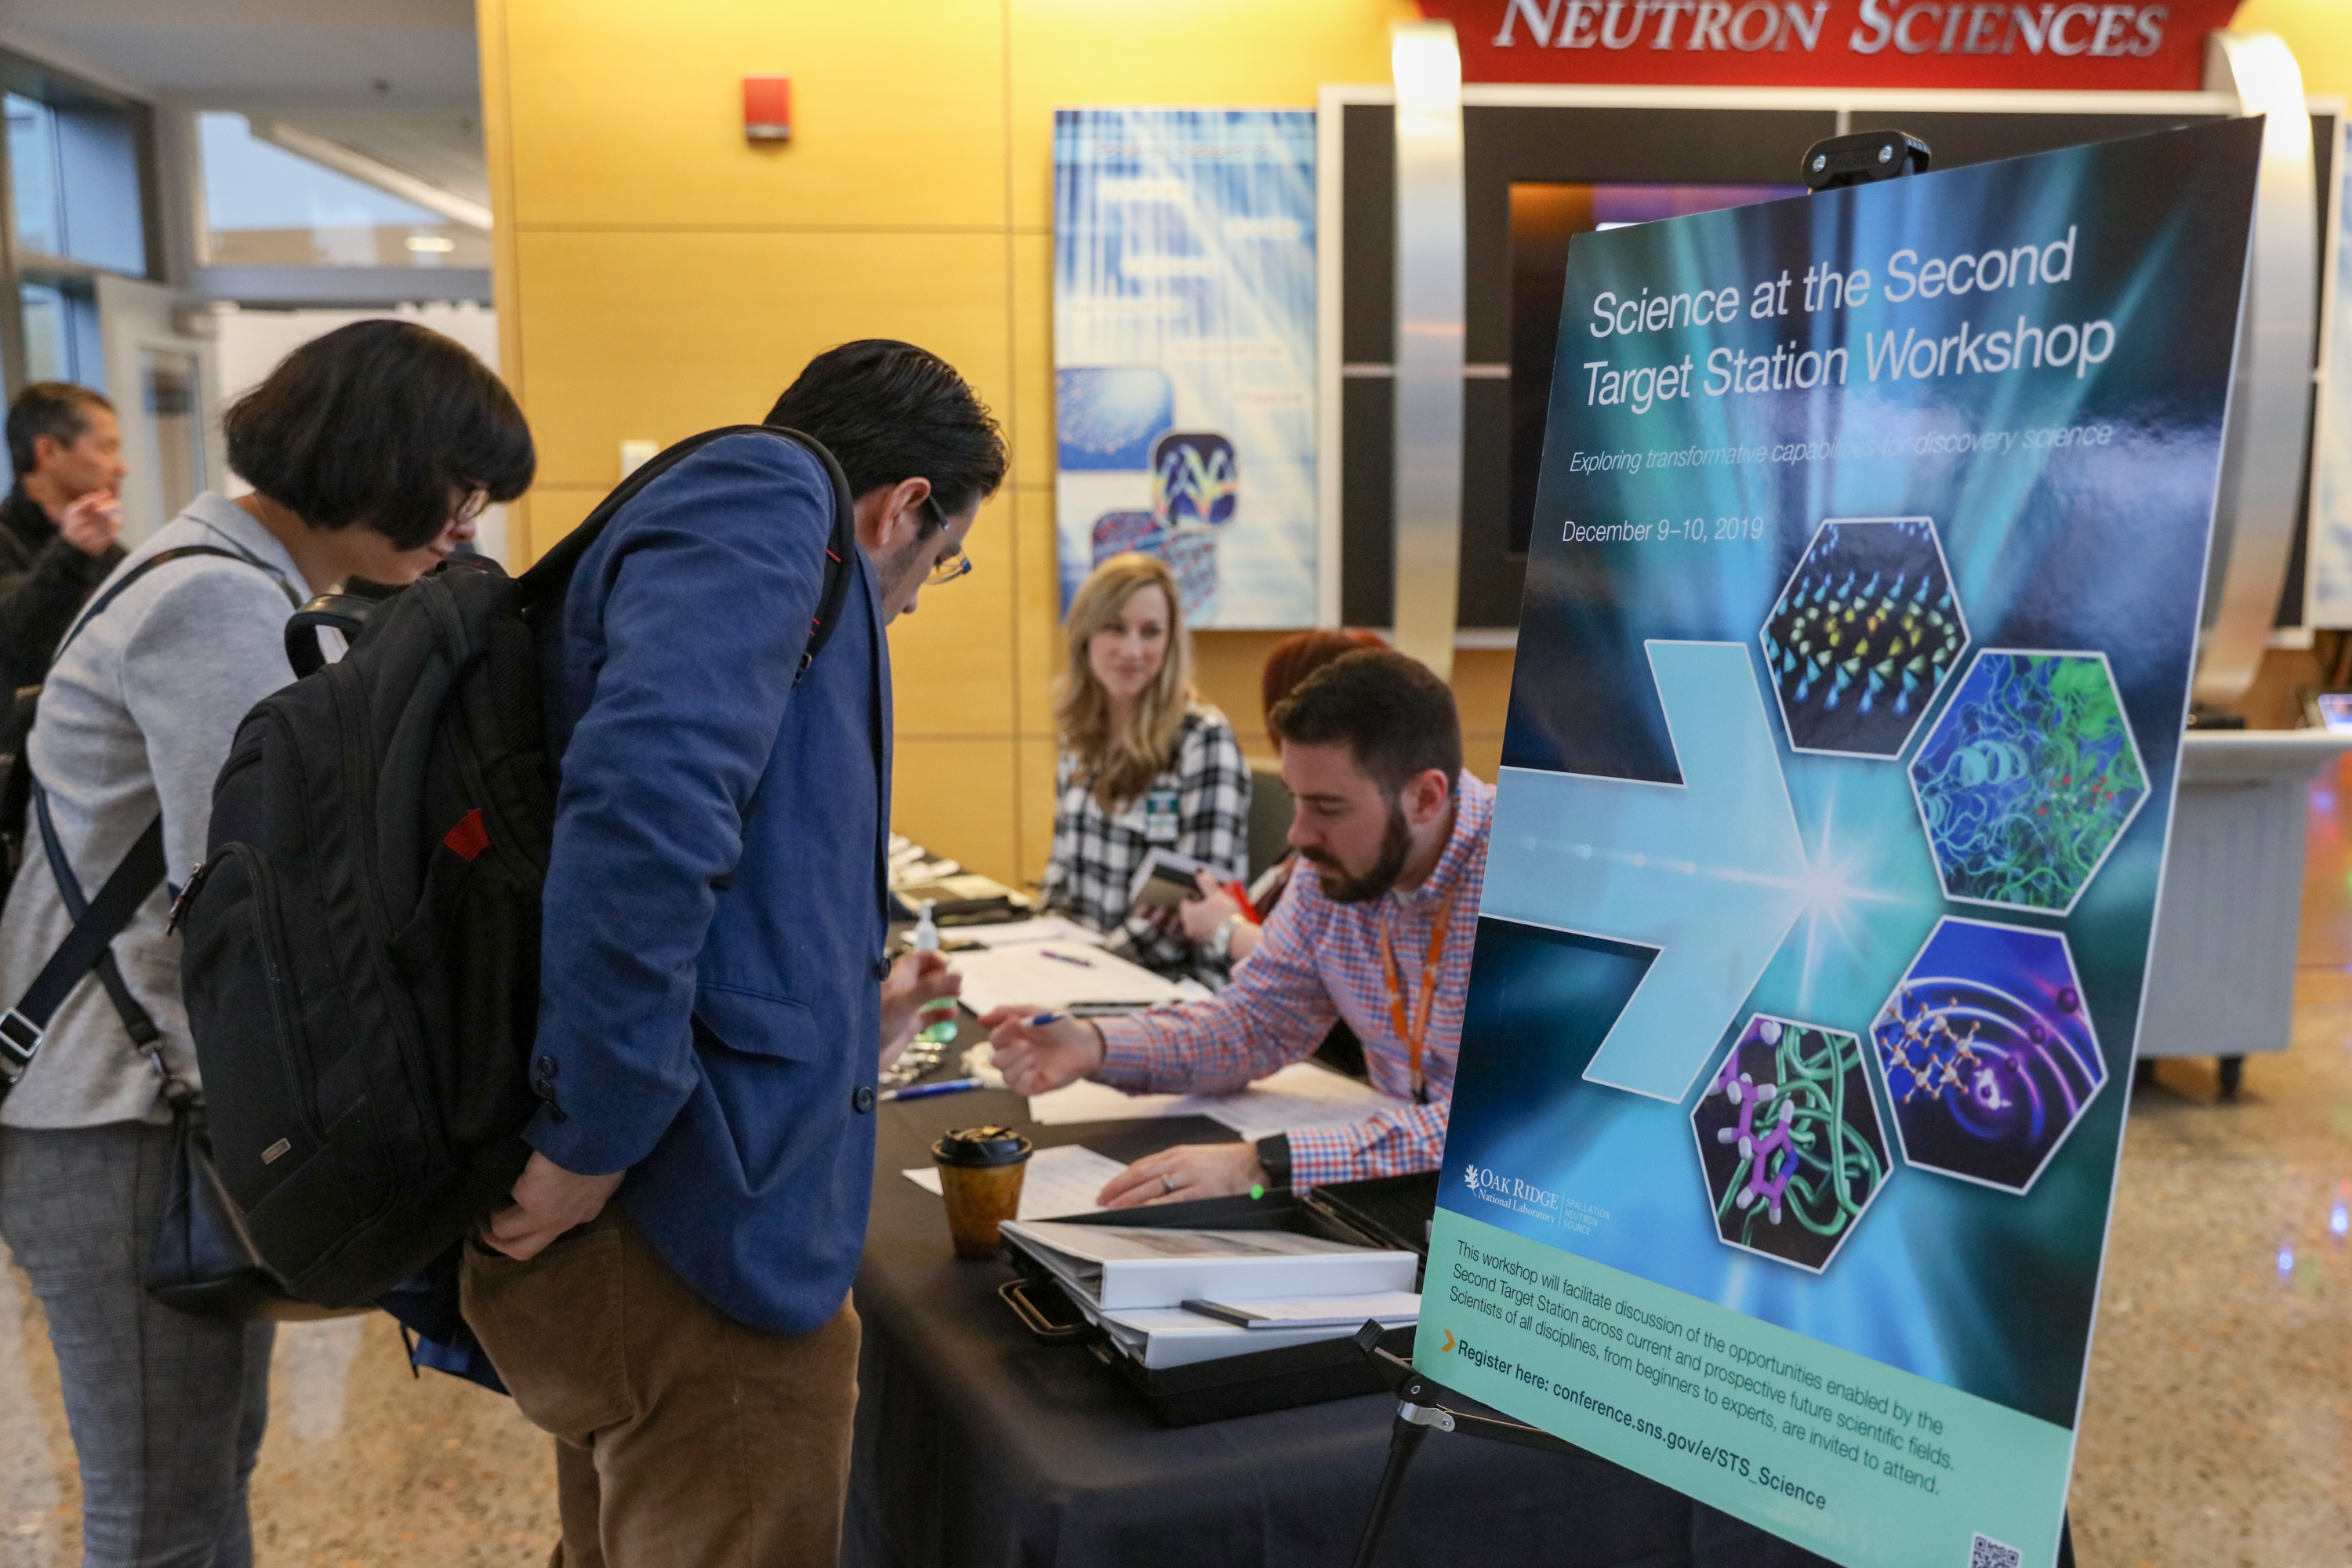 Nearly 300 members of the global neutron scattering community attended the Science at the 'Second Target Station' workshop, either onsite or remotely. Credit: ORNL/Genevieve Martin